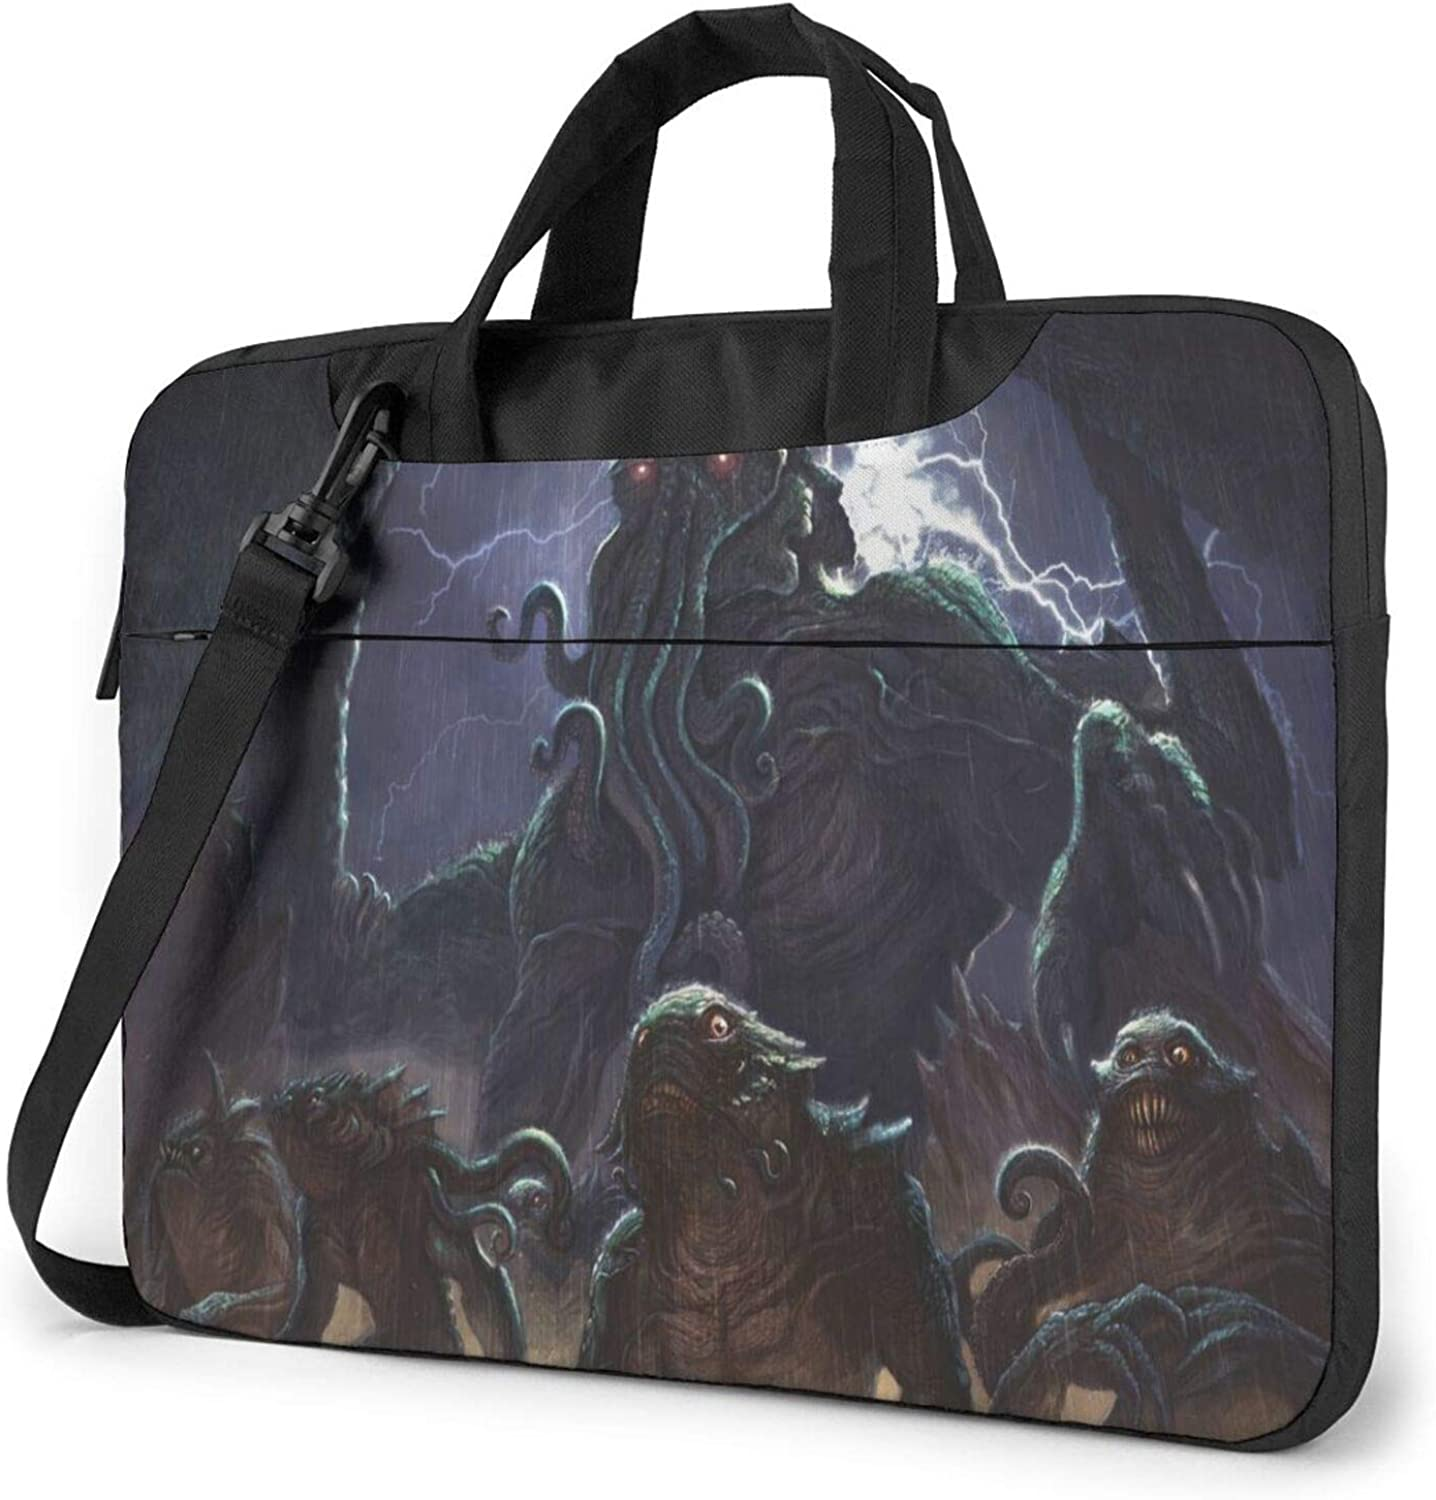 Cthulhu Laptop Bag Tablet Portable Briefcase Protective Case Cover Messenger Bags